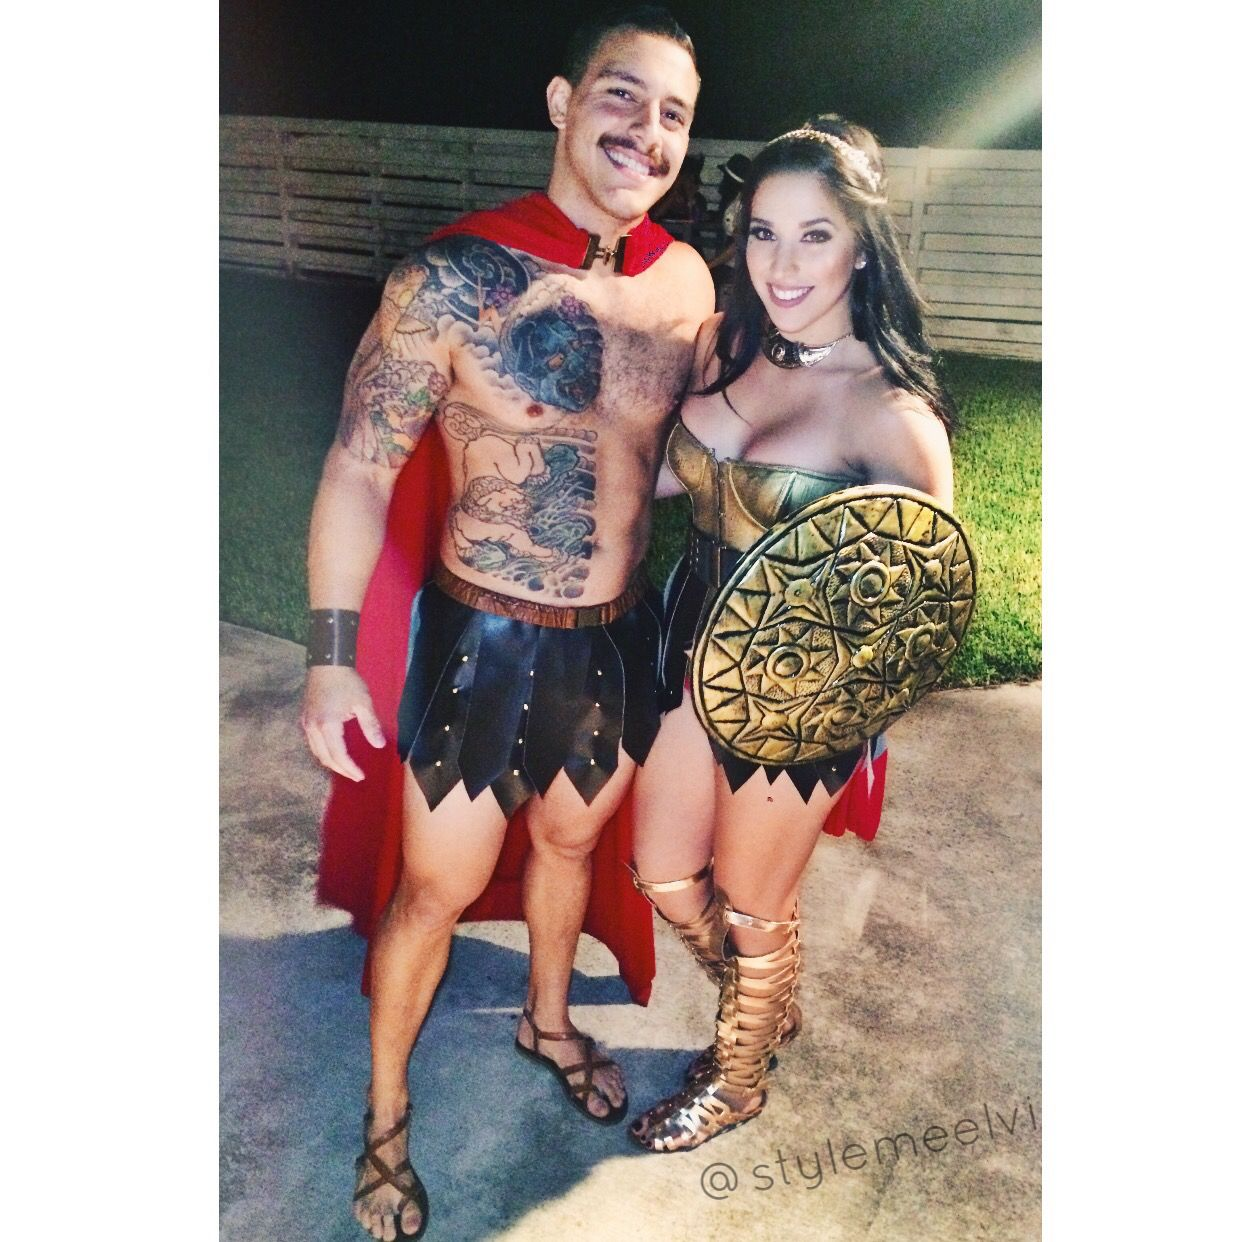 Spartan warrior couples costume 300 Halloween Cosplay  sc 1 st  Pinterest & Spartan warrior couples costume 300 Halloween Cosplay | Halloween ...